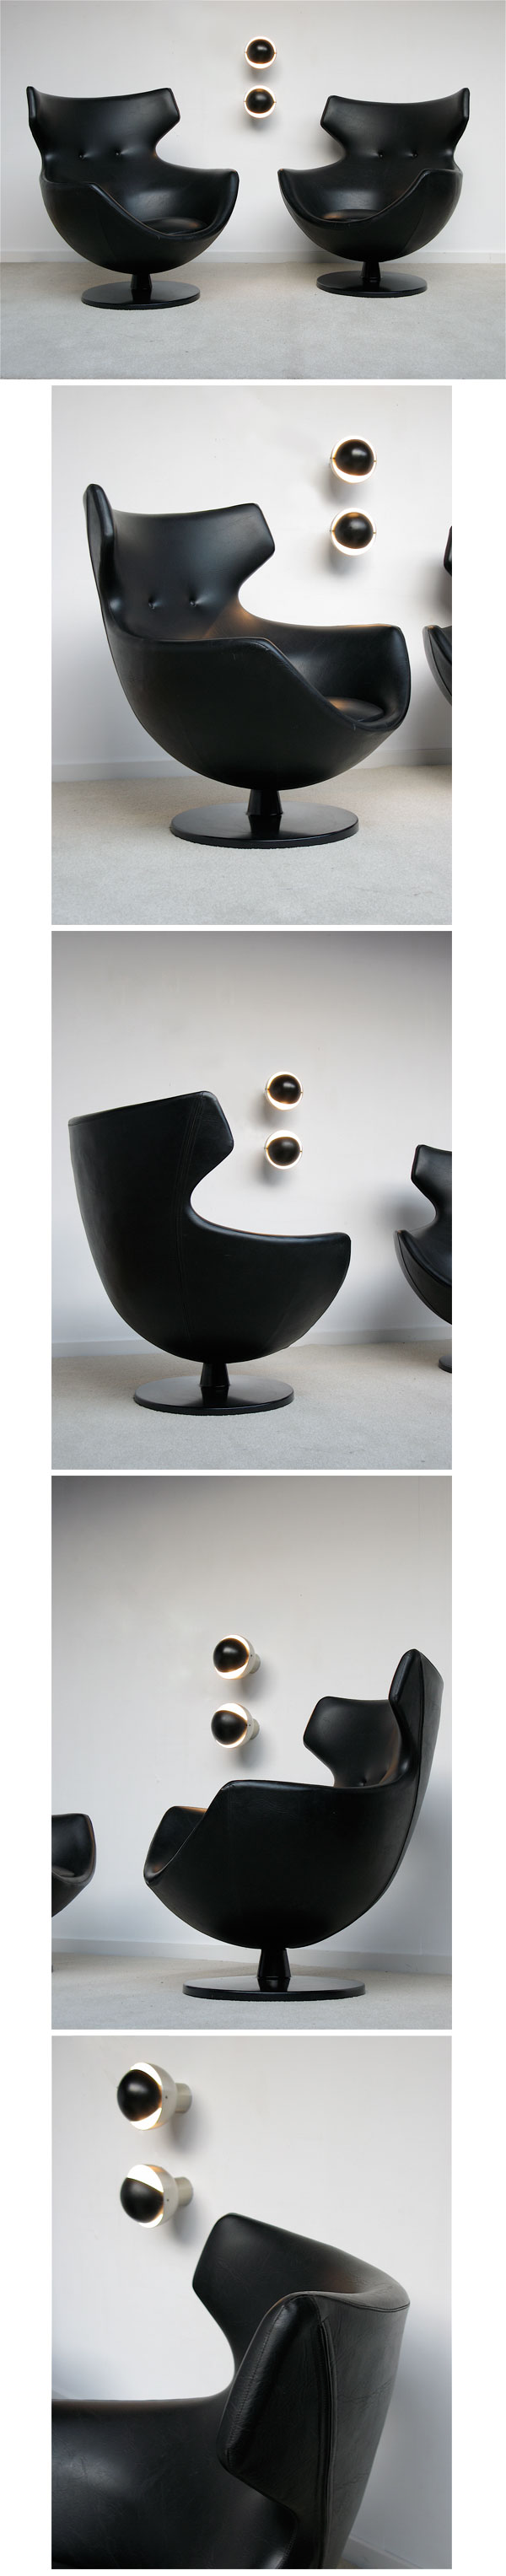 PIERRE GUARICHE, Egg, chair, MEUROP, Belgium, 1960s